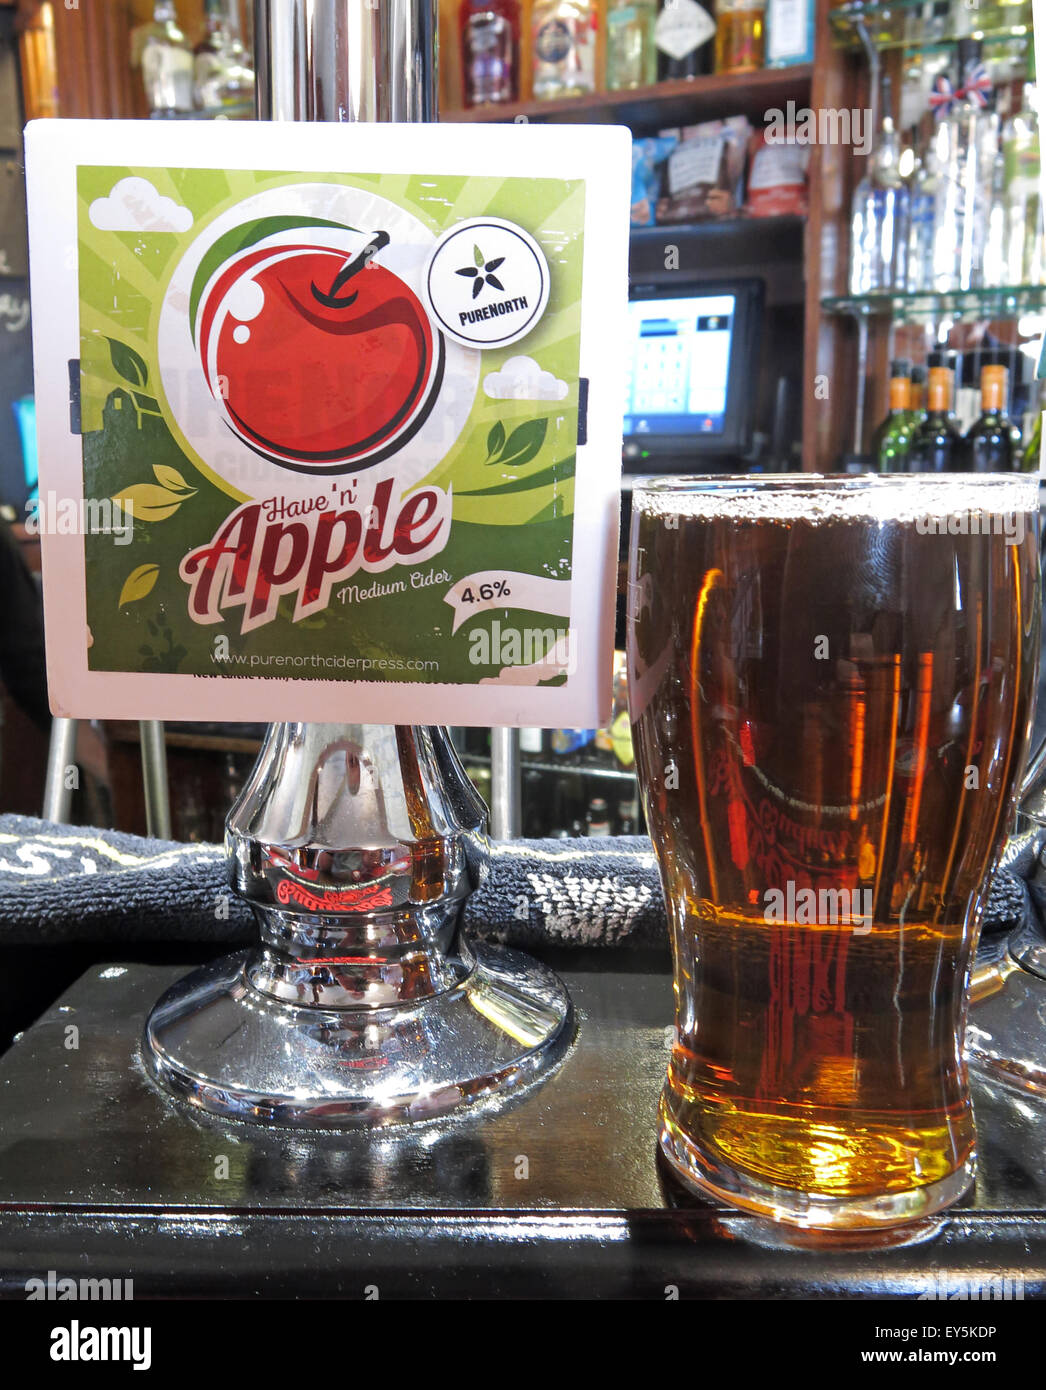 Pure North Haven Apple Cider pint on a bar, England - Stock Image